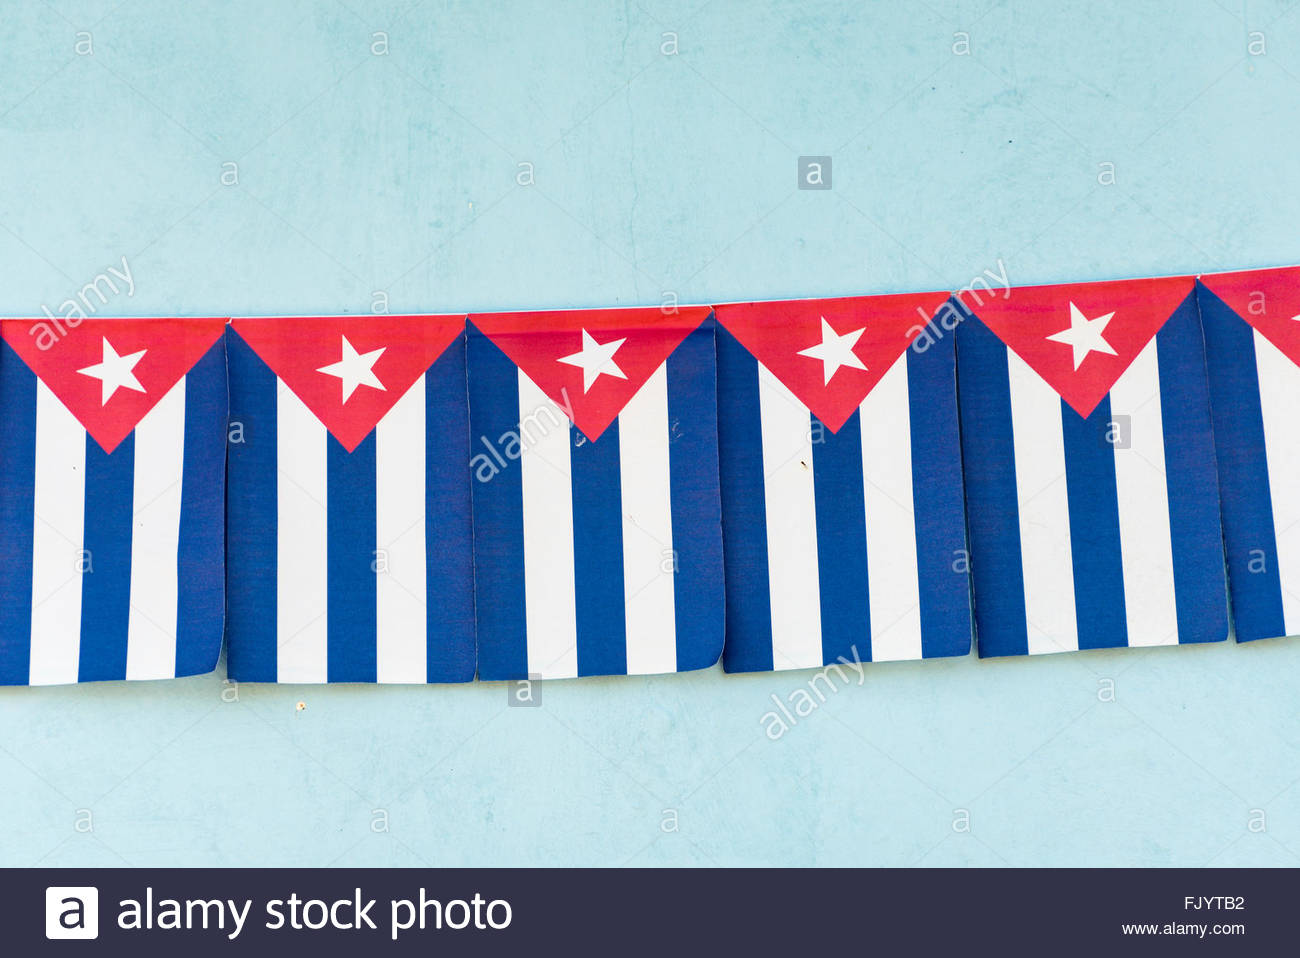 Cuban flag decorations, used in political parades.The flag of Cuba consists of five blue and white alternating stripes, - Stock Image